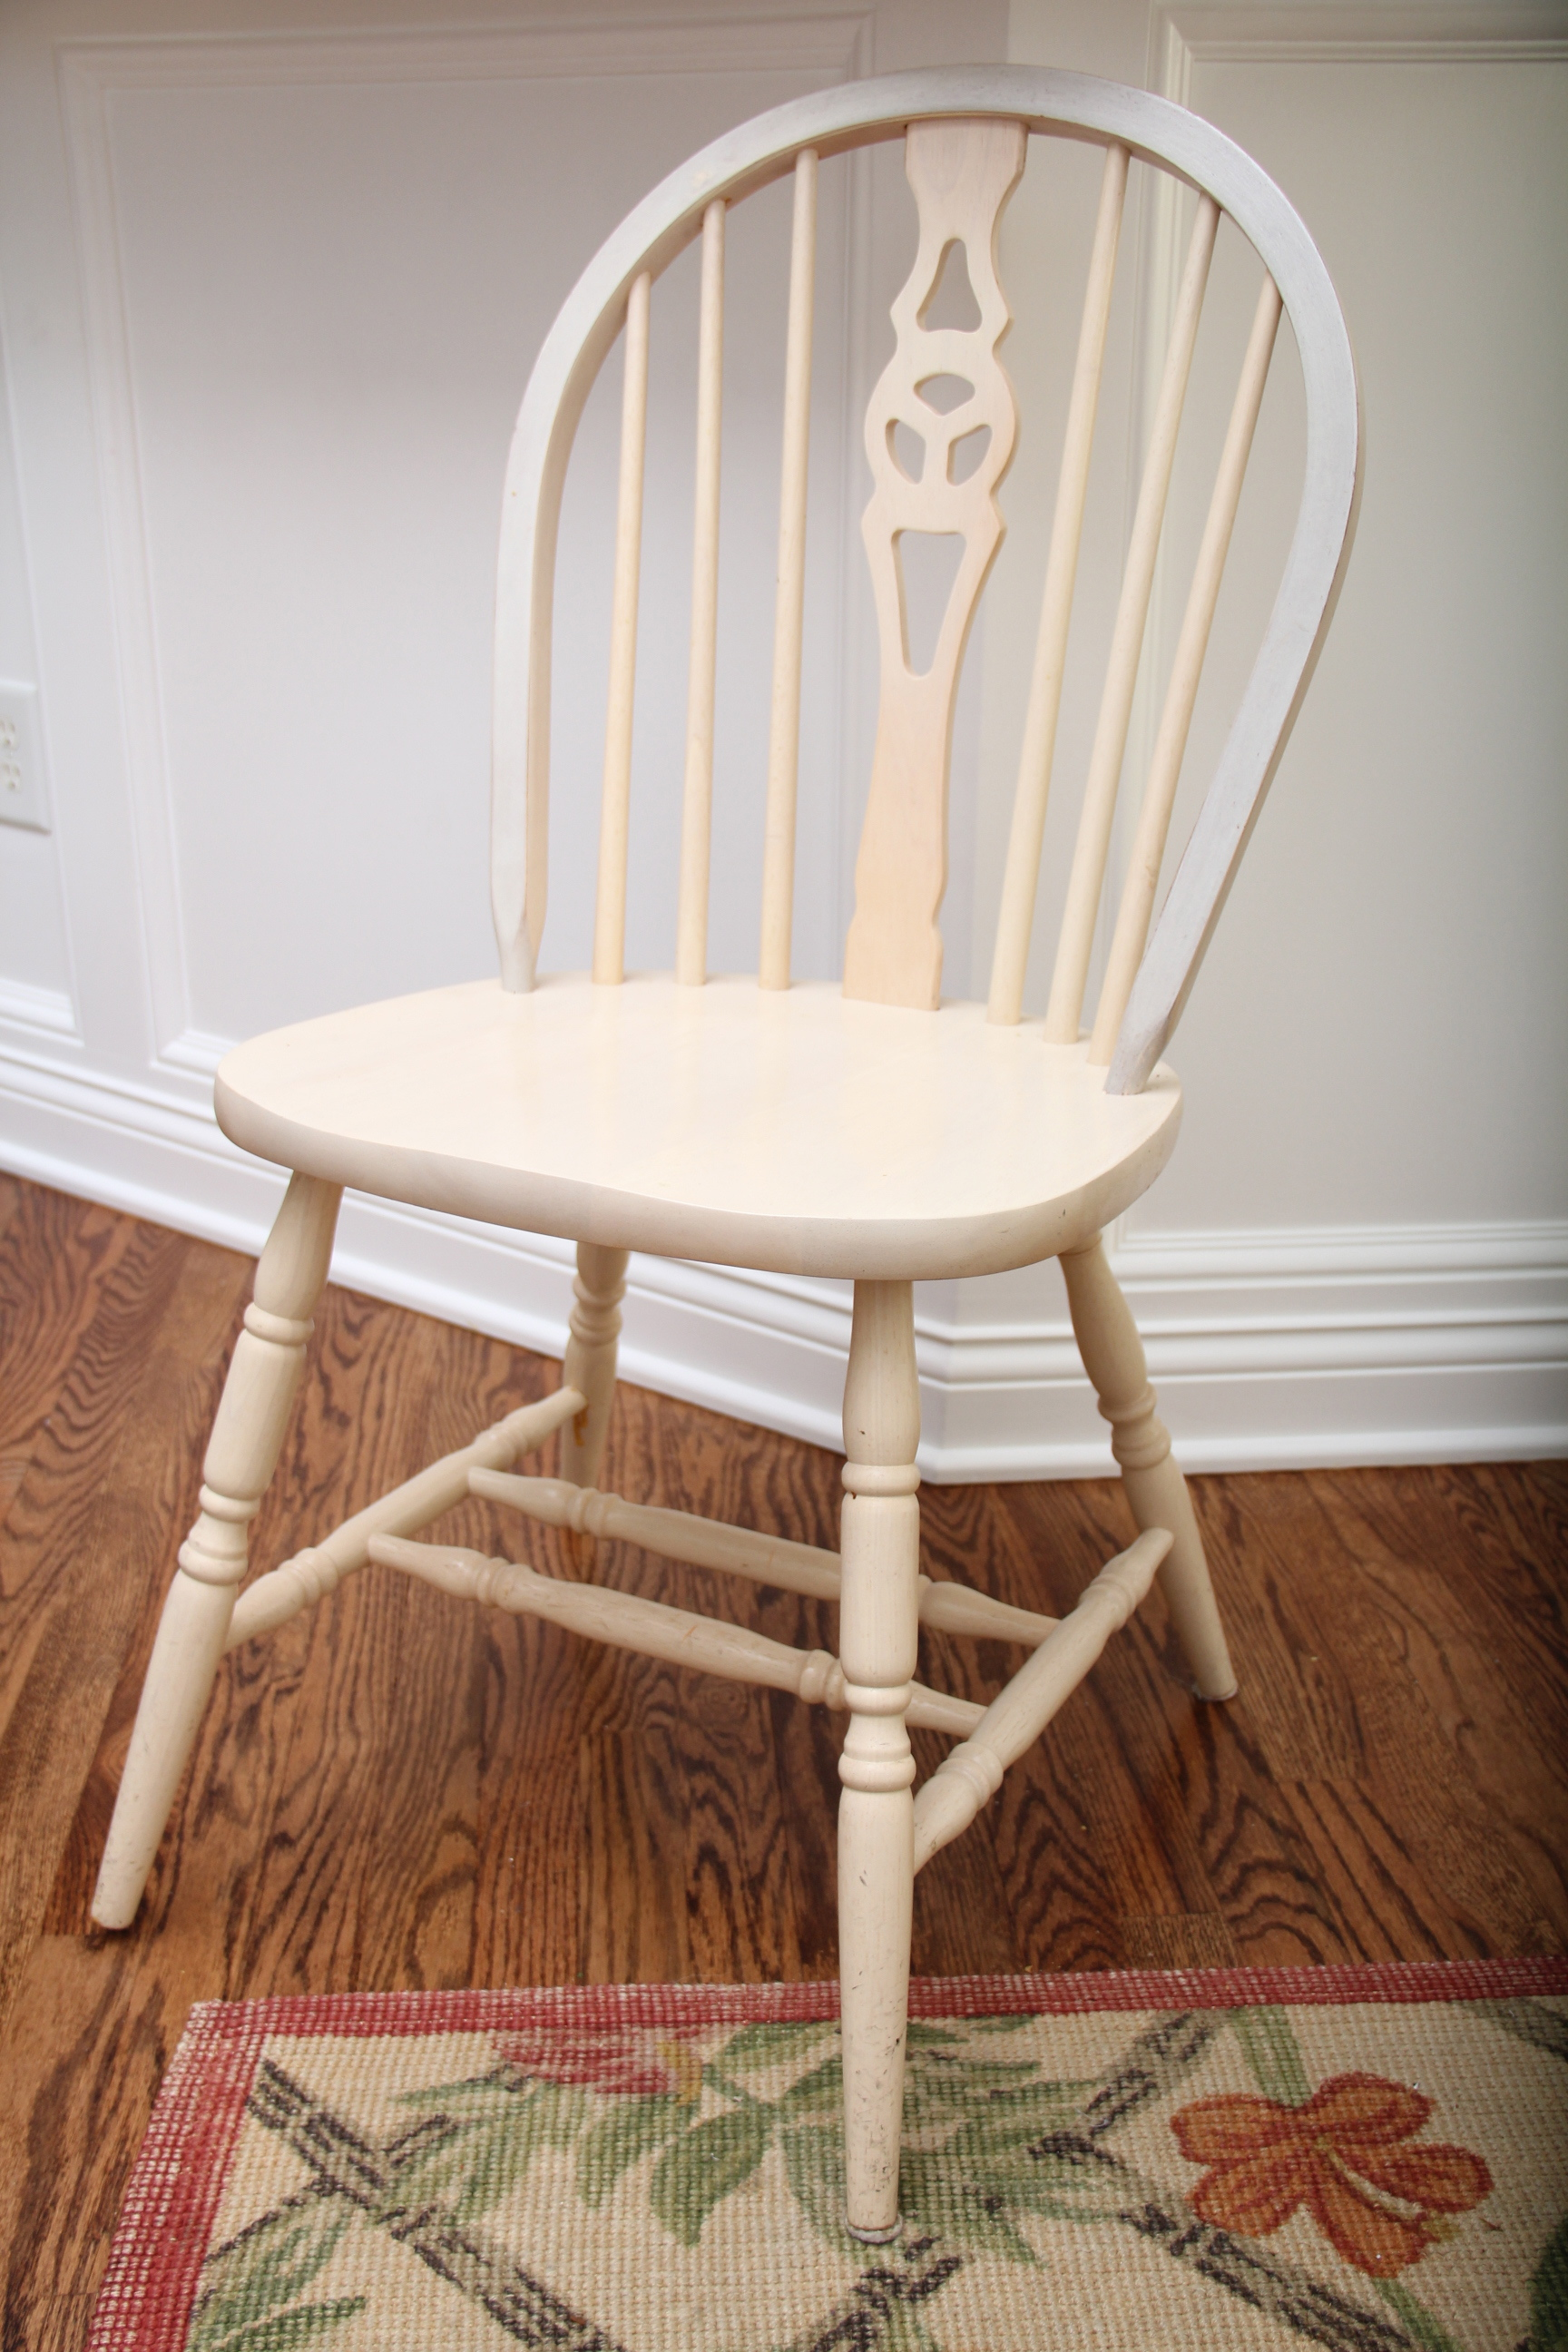 windsor style chairs chair industrial design farmhouse dining table with six